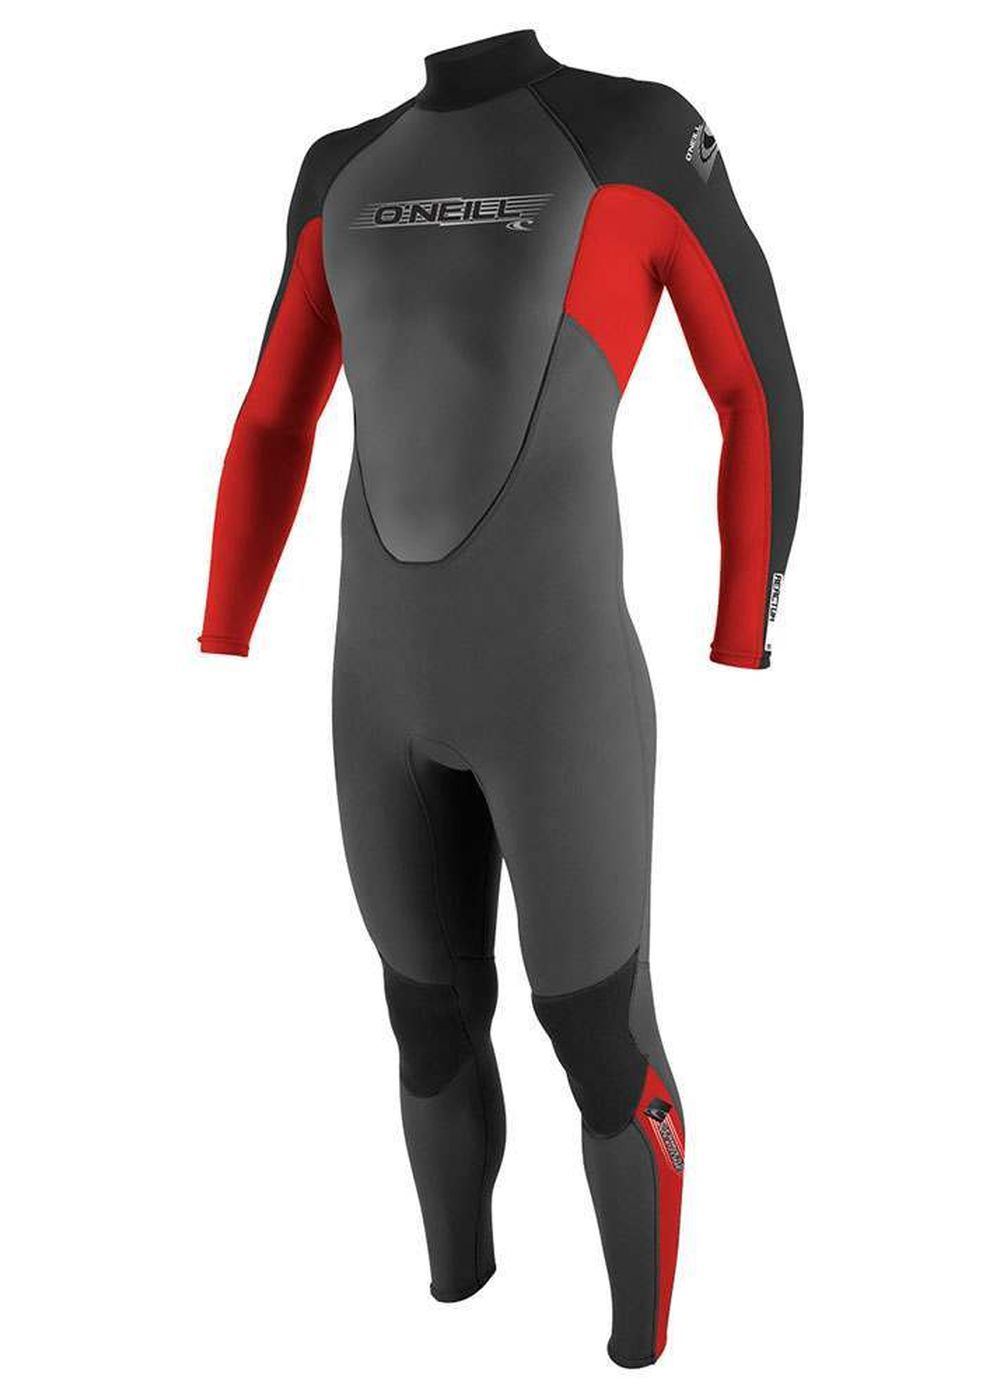 Oneill Reactor 3/2 Wetsuit Graph/red/blk 2017 Picture